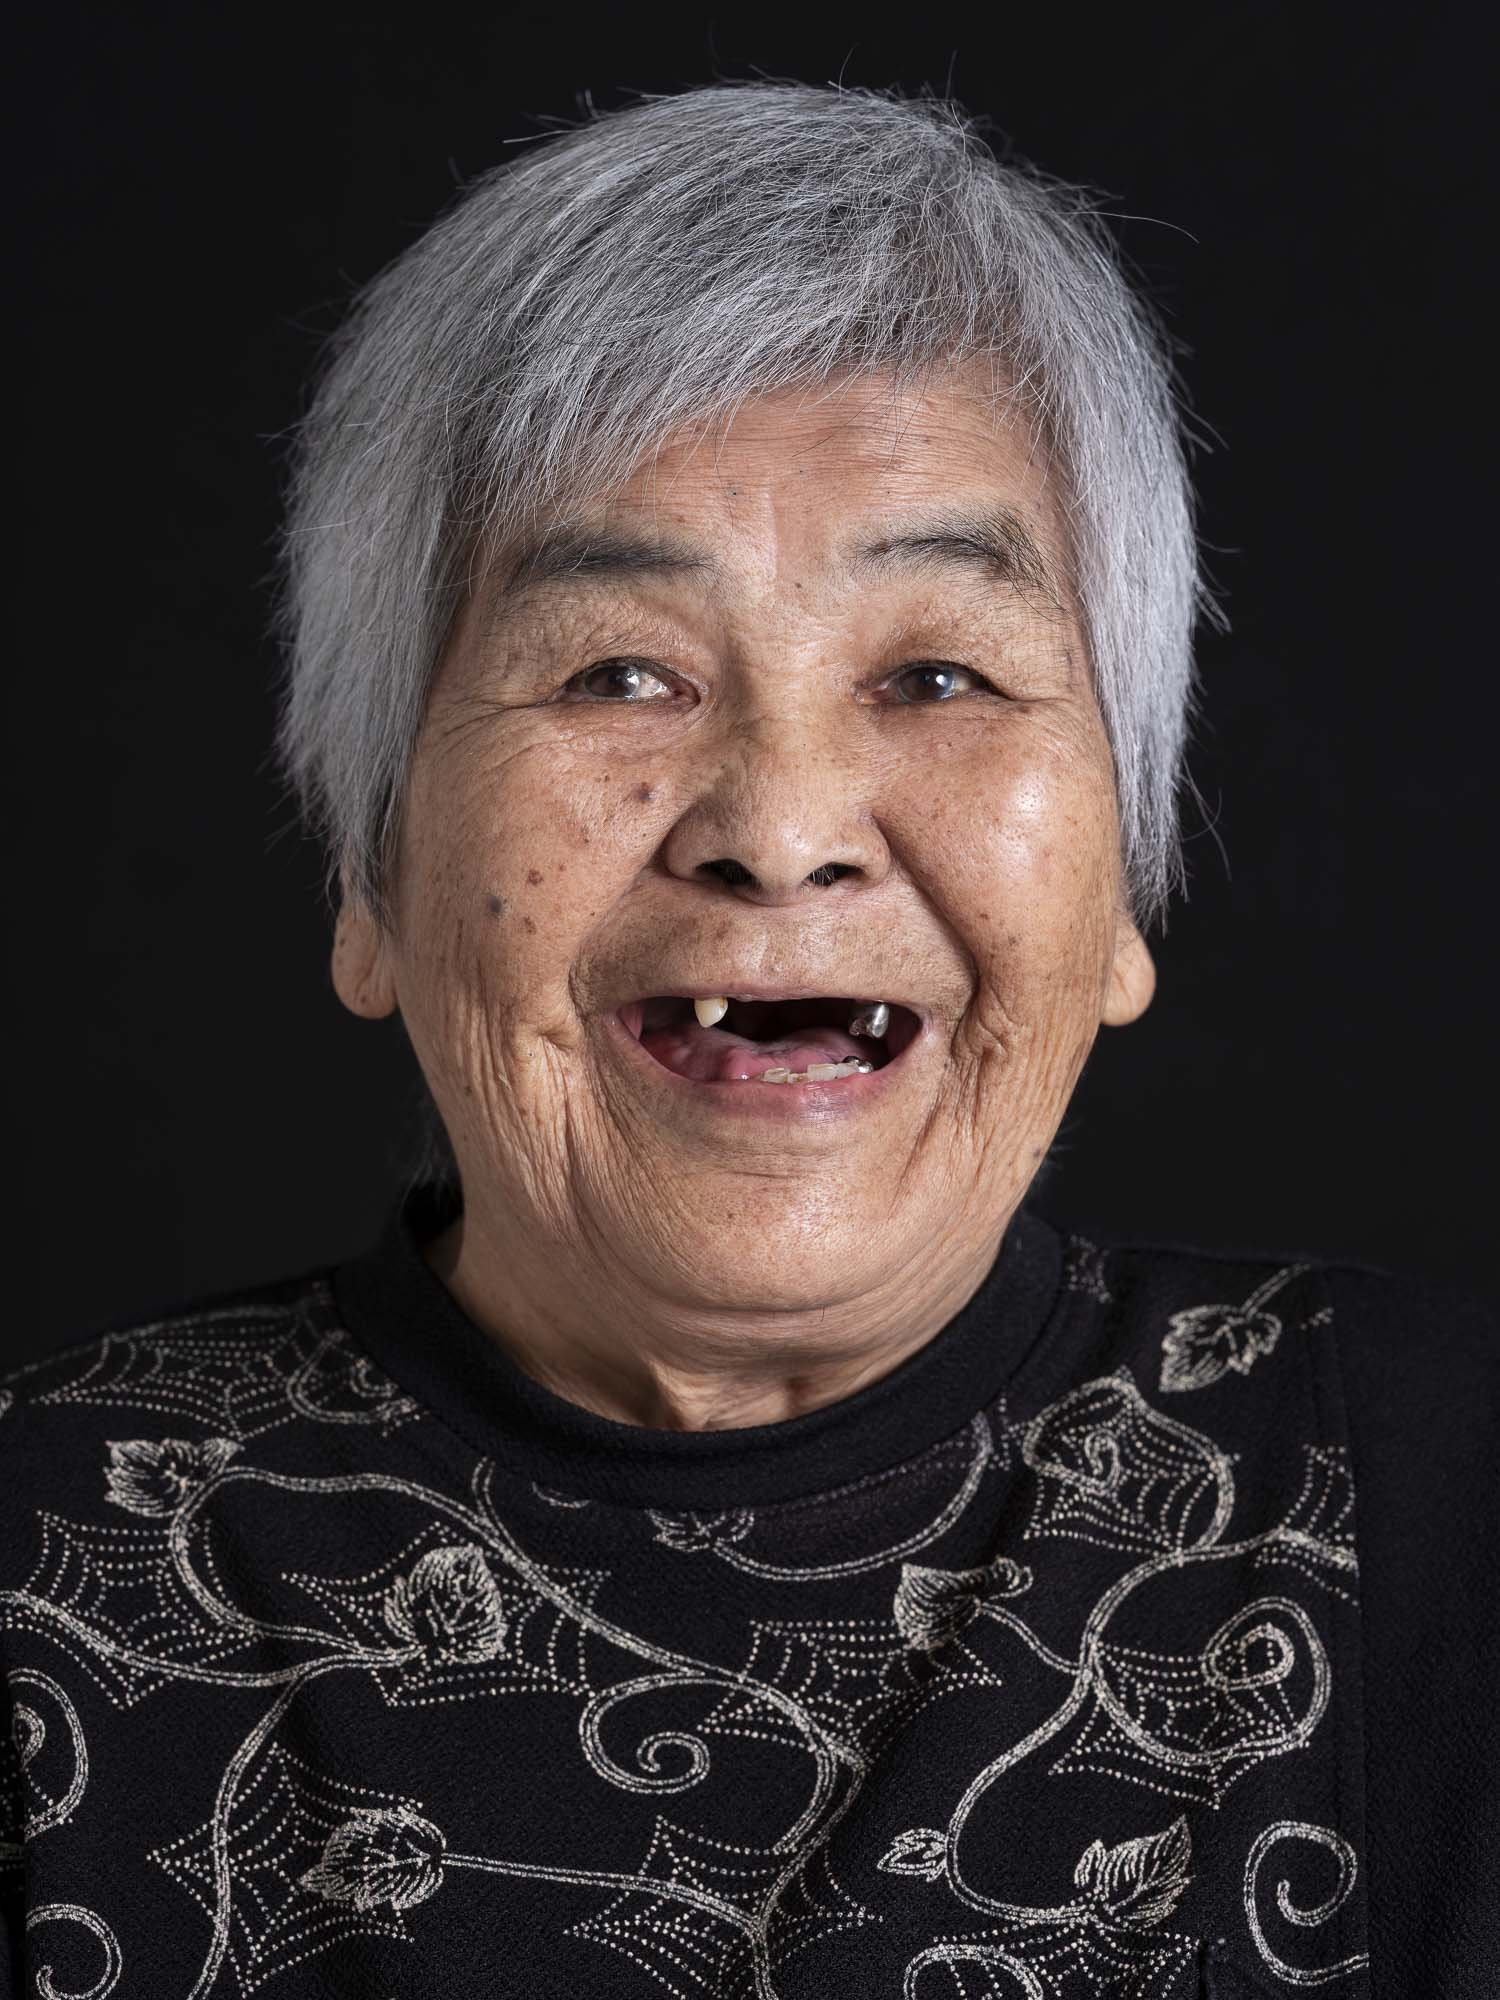 okinawa longevity centenarian people japan portrait photography project